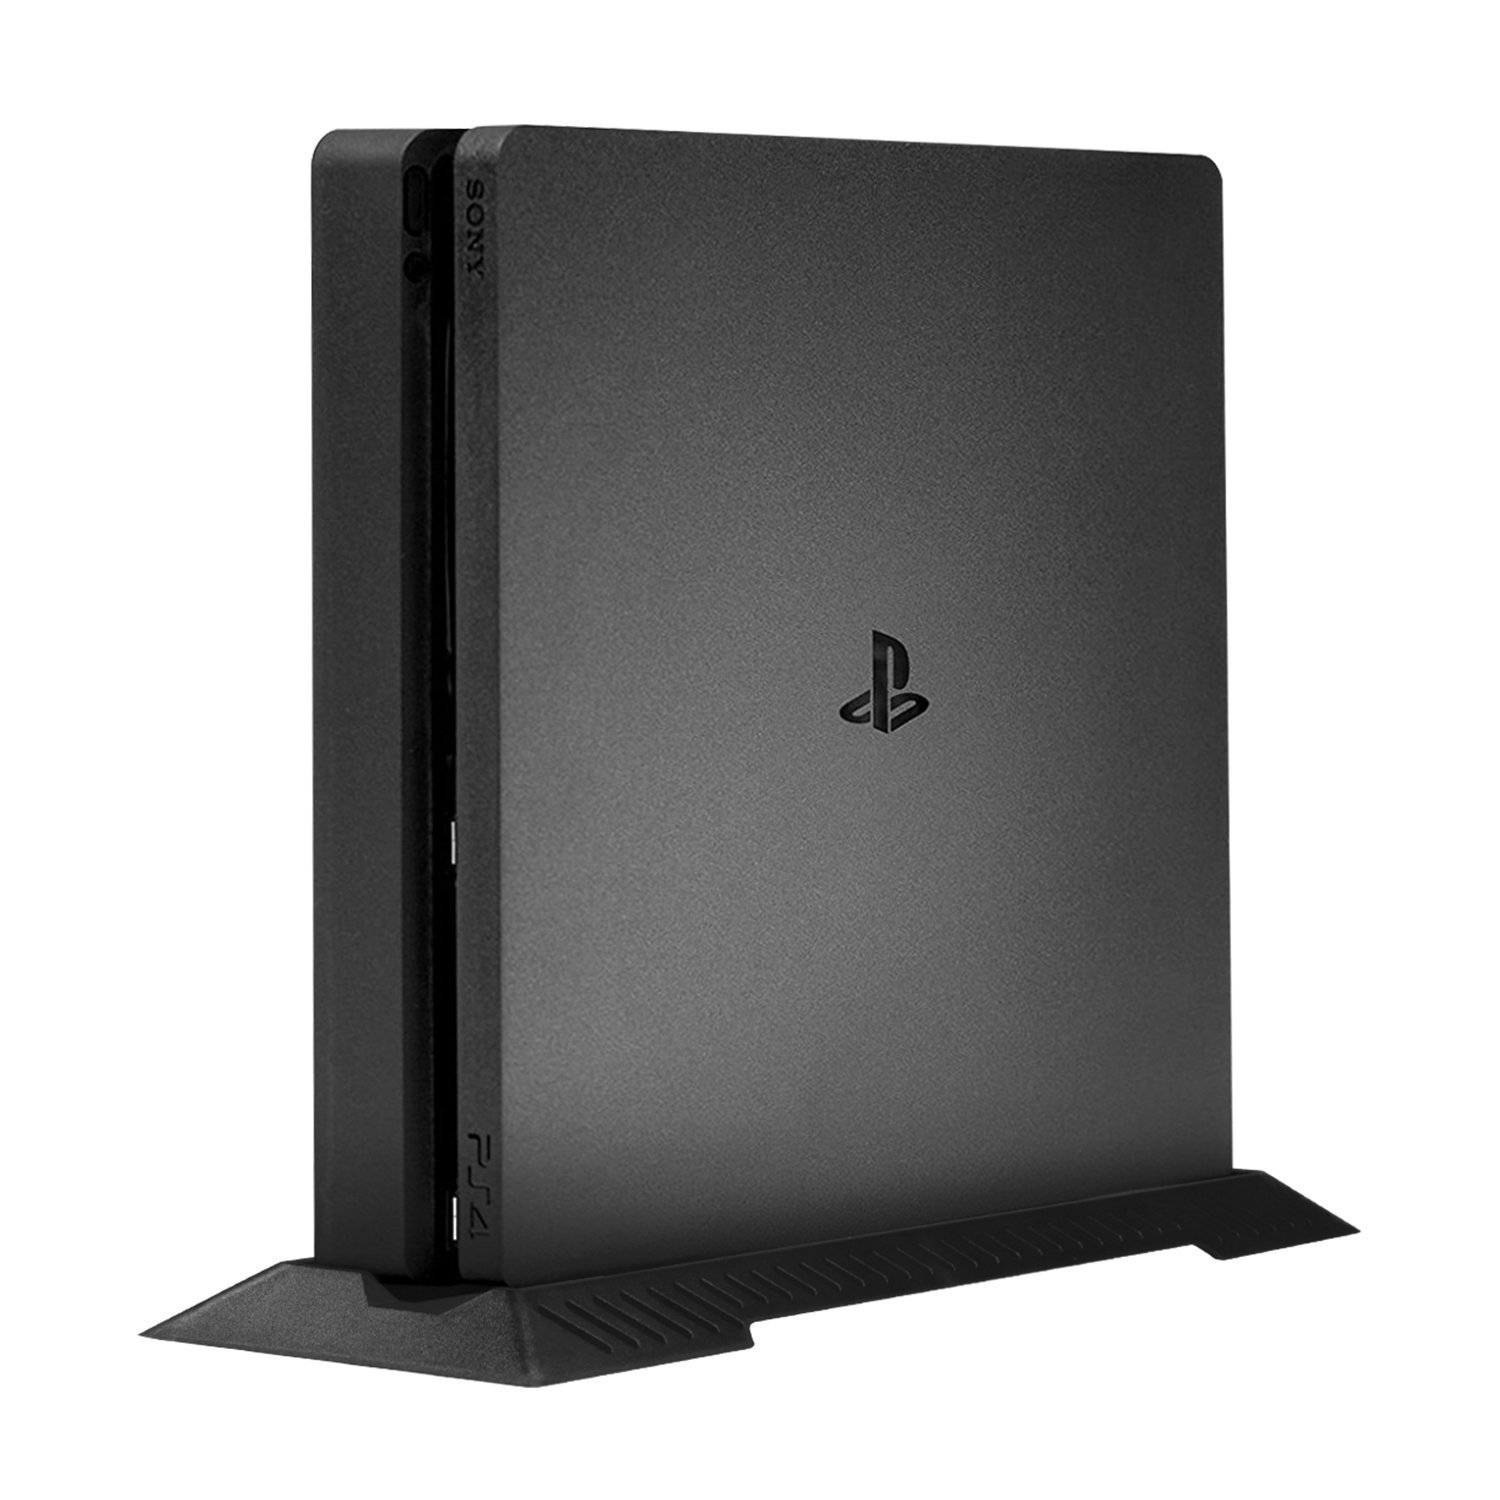 Younik Vertical Stand for PS4 Slim, Built-in Cooling Vents and Non-Slip Feet Steady Base Mount for Playstation 4 Slim, Black